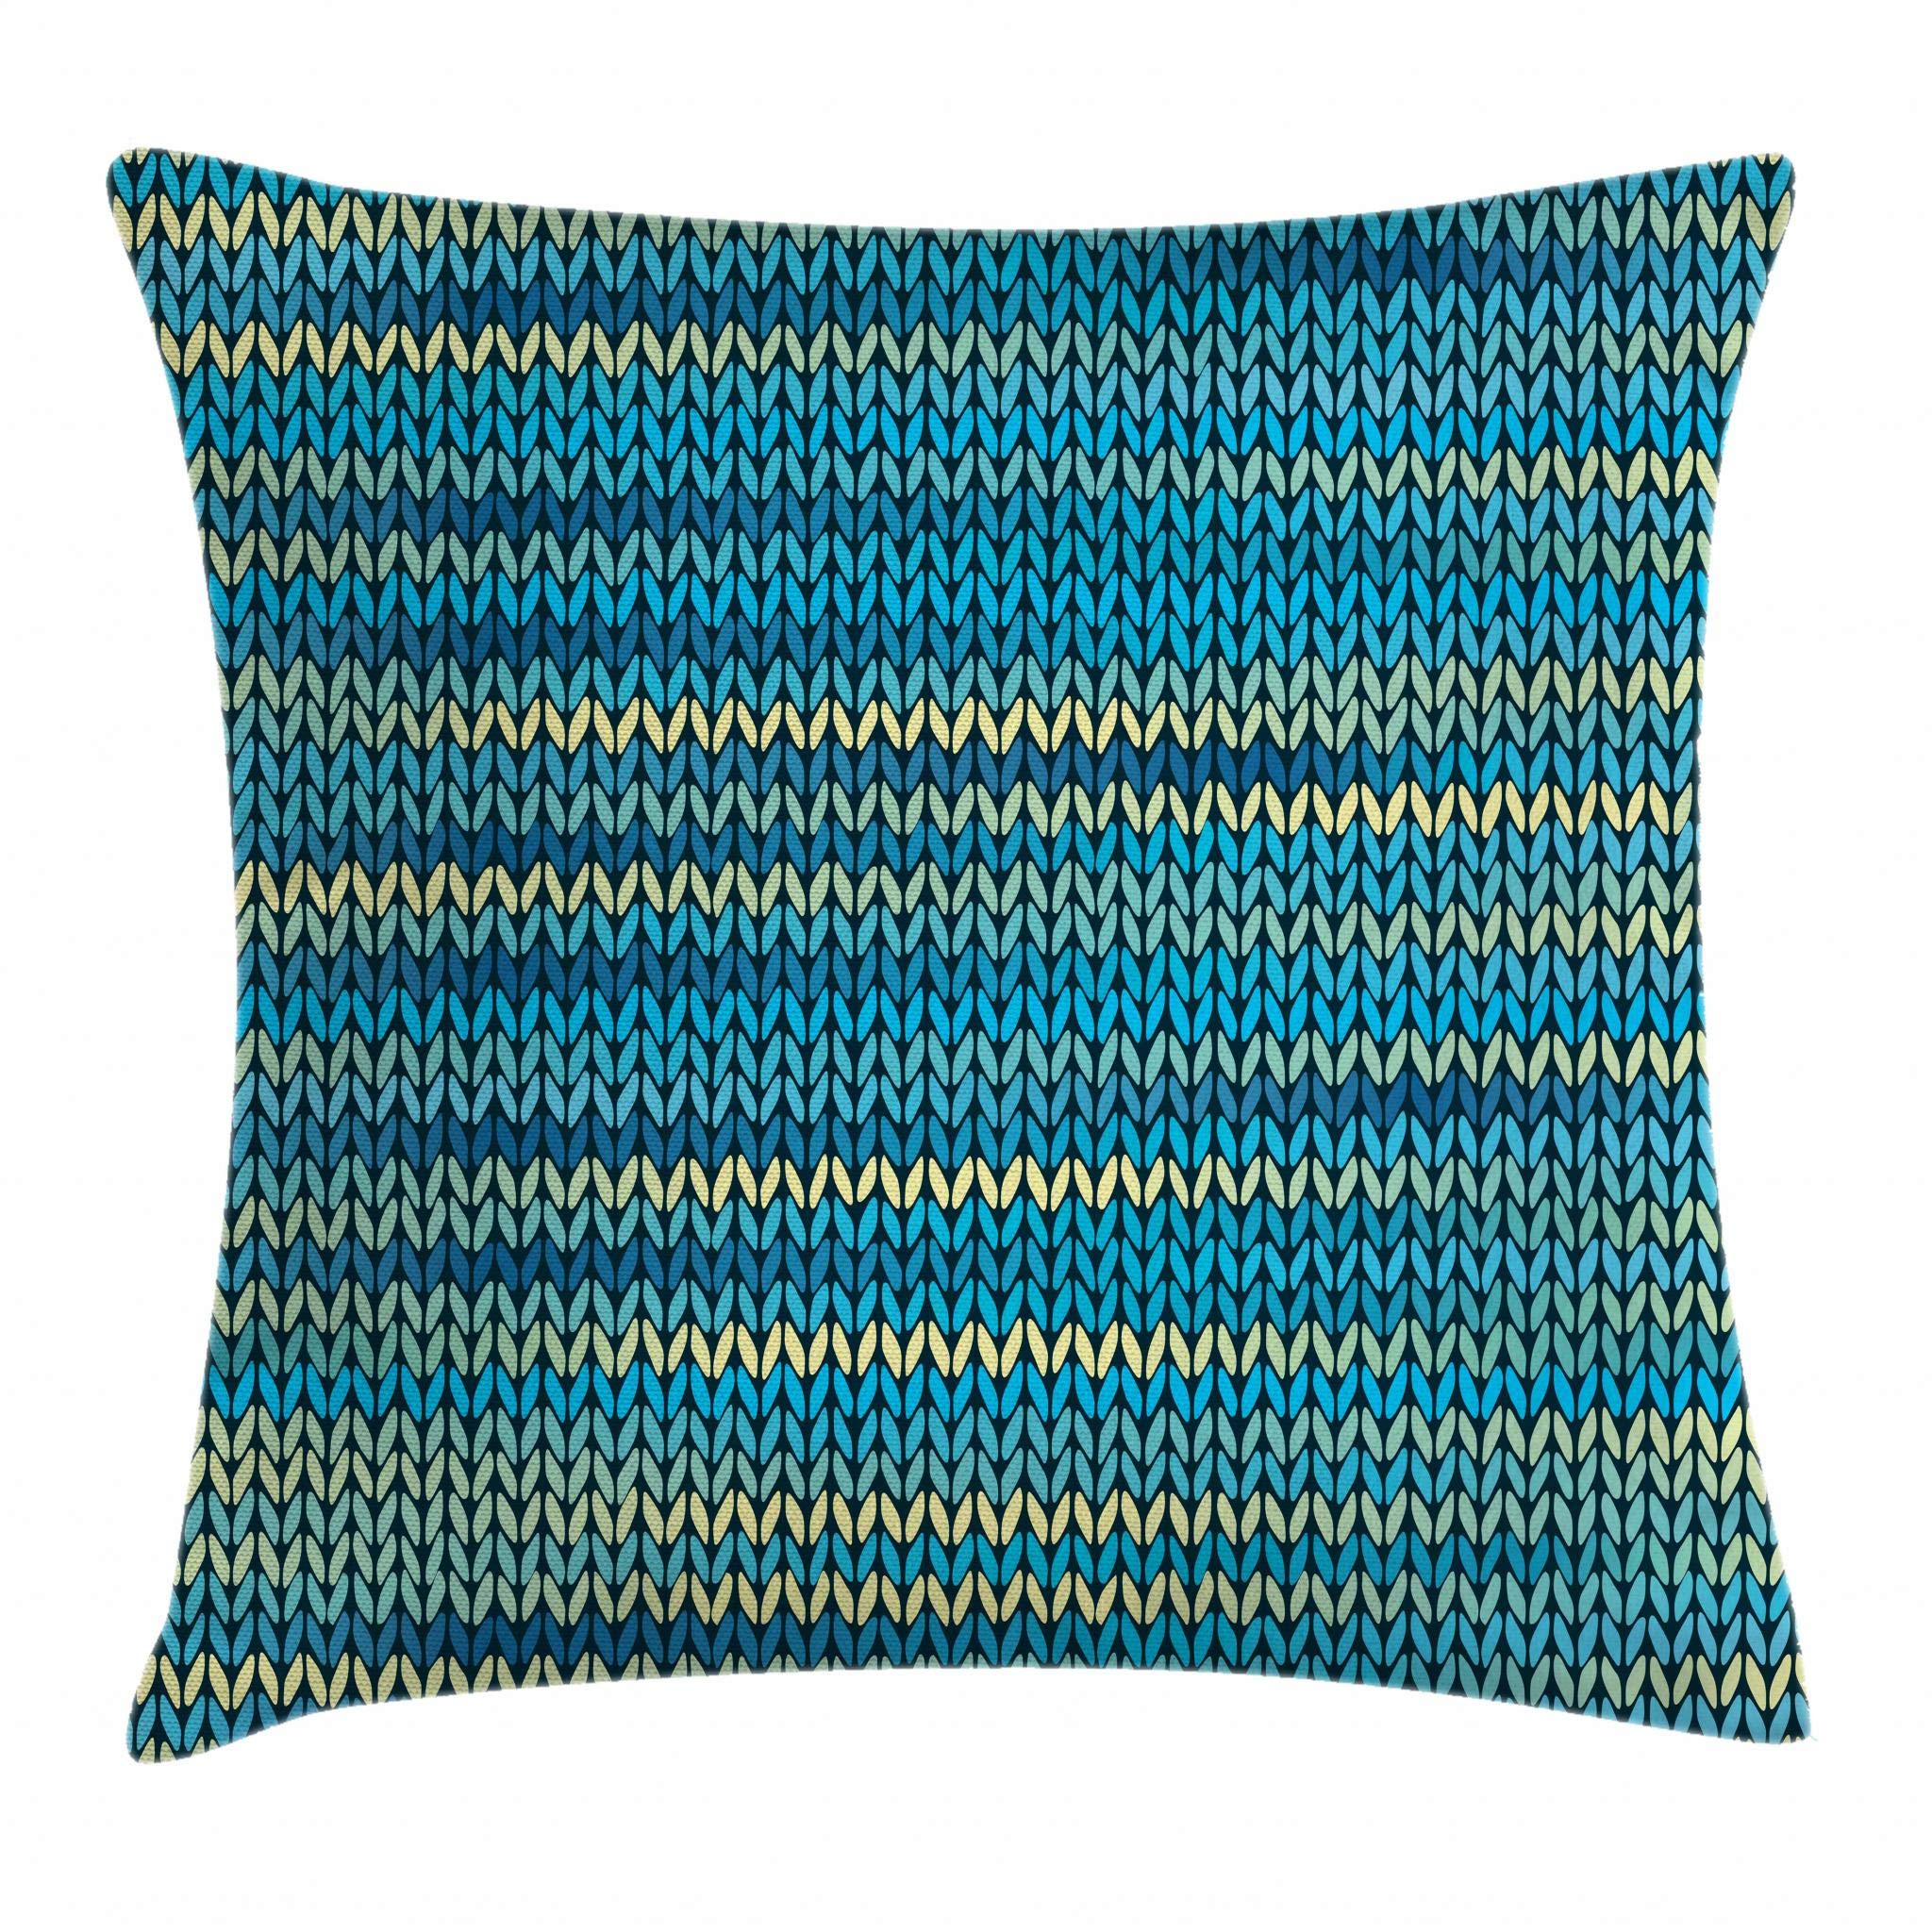 Knitted Square Patterns - Design Patterns